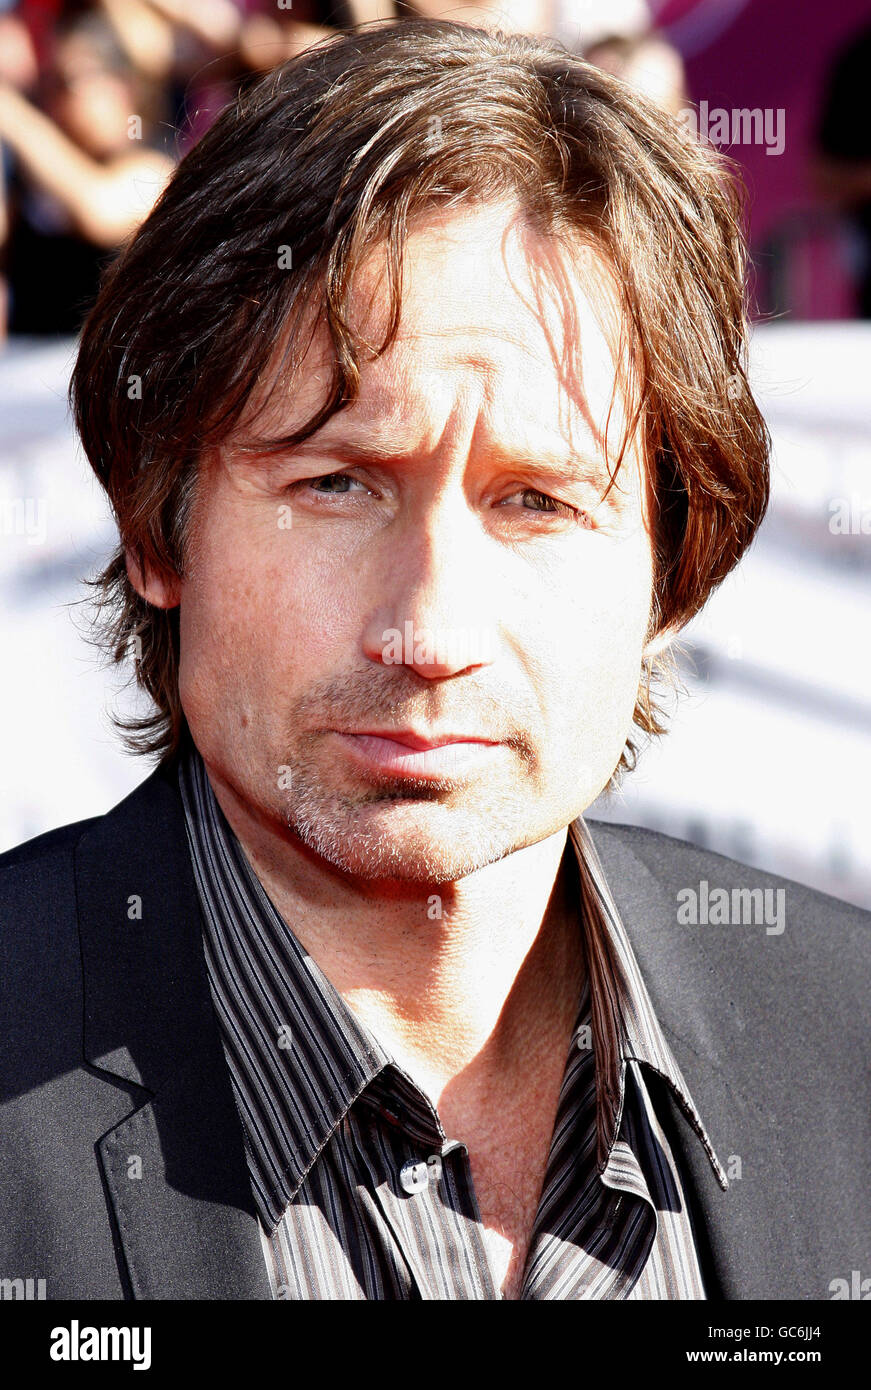 David Duchovny at the World Premiere of 'The X-Files: I Want To Believe' held at the Grauman's Chinese - Stock Image